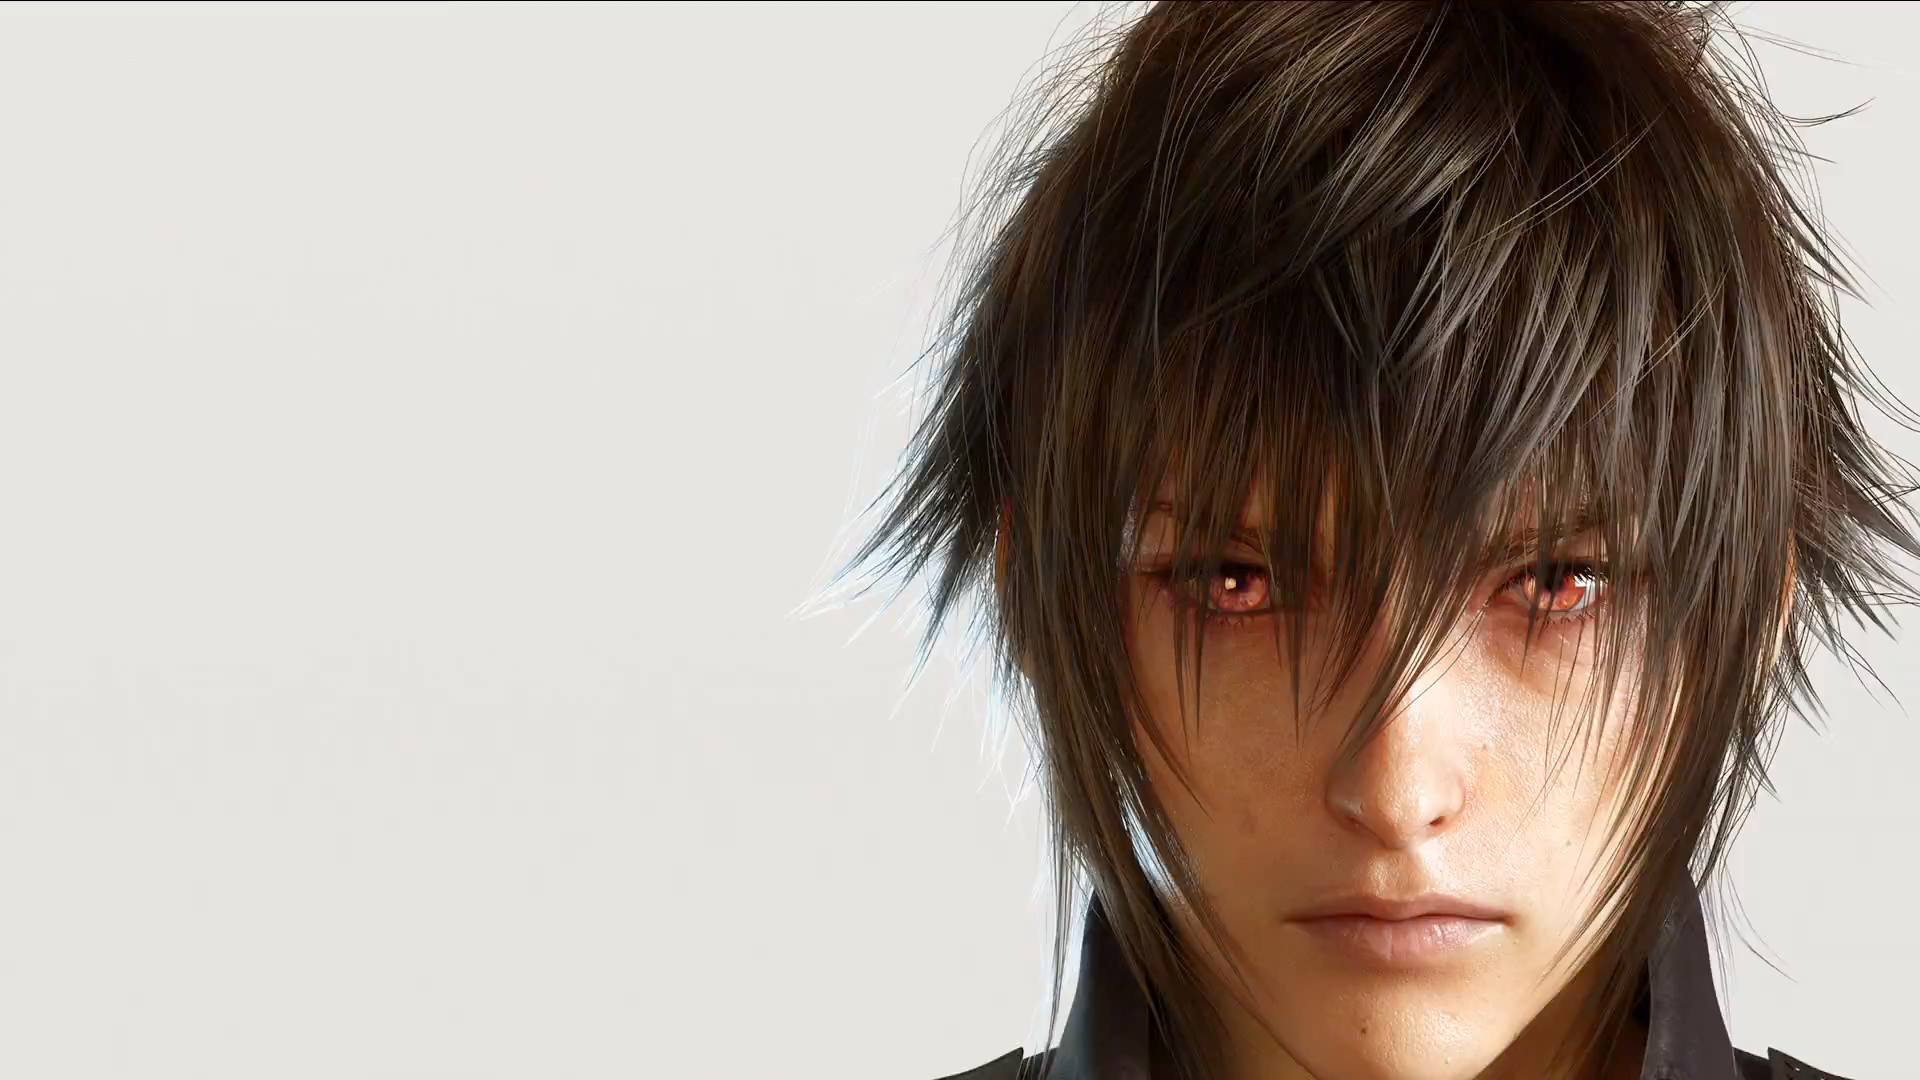 Noctis' eyes are a serious red when he is using the powers bestowed upon him.